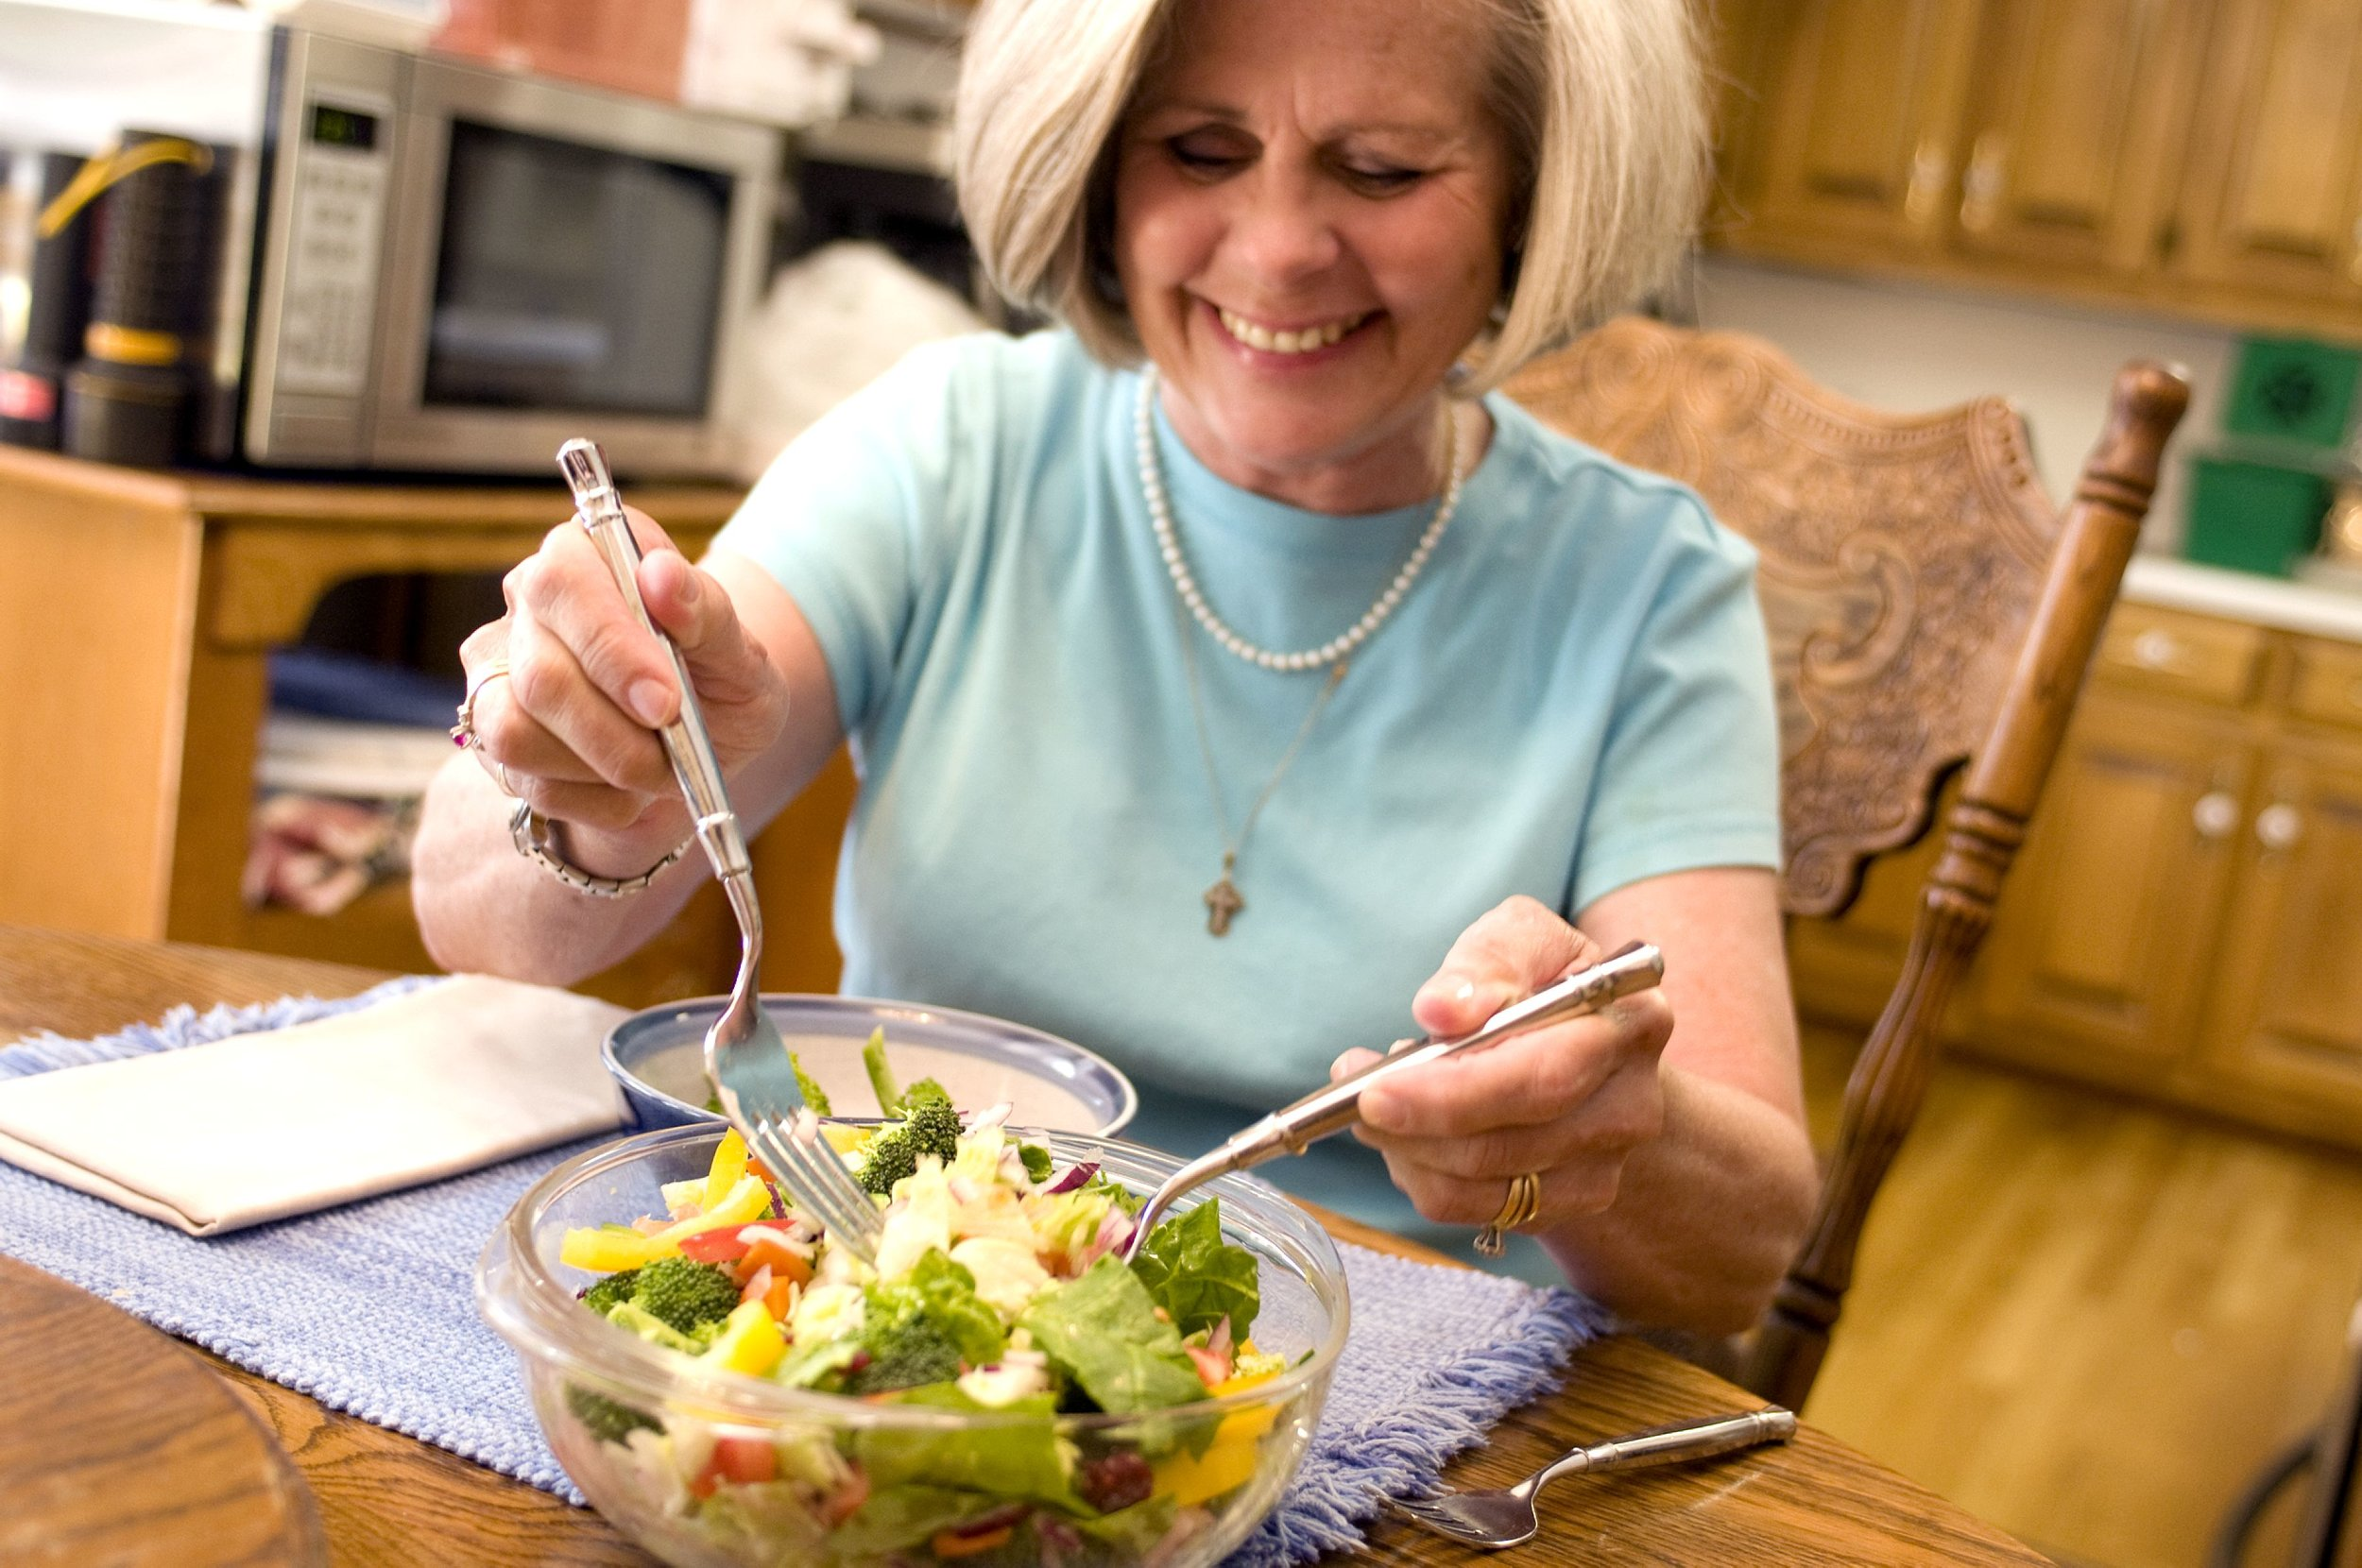 Woman menopause healthy eating nutrition.jpeg